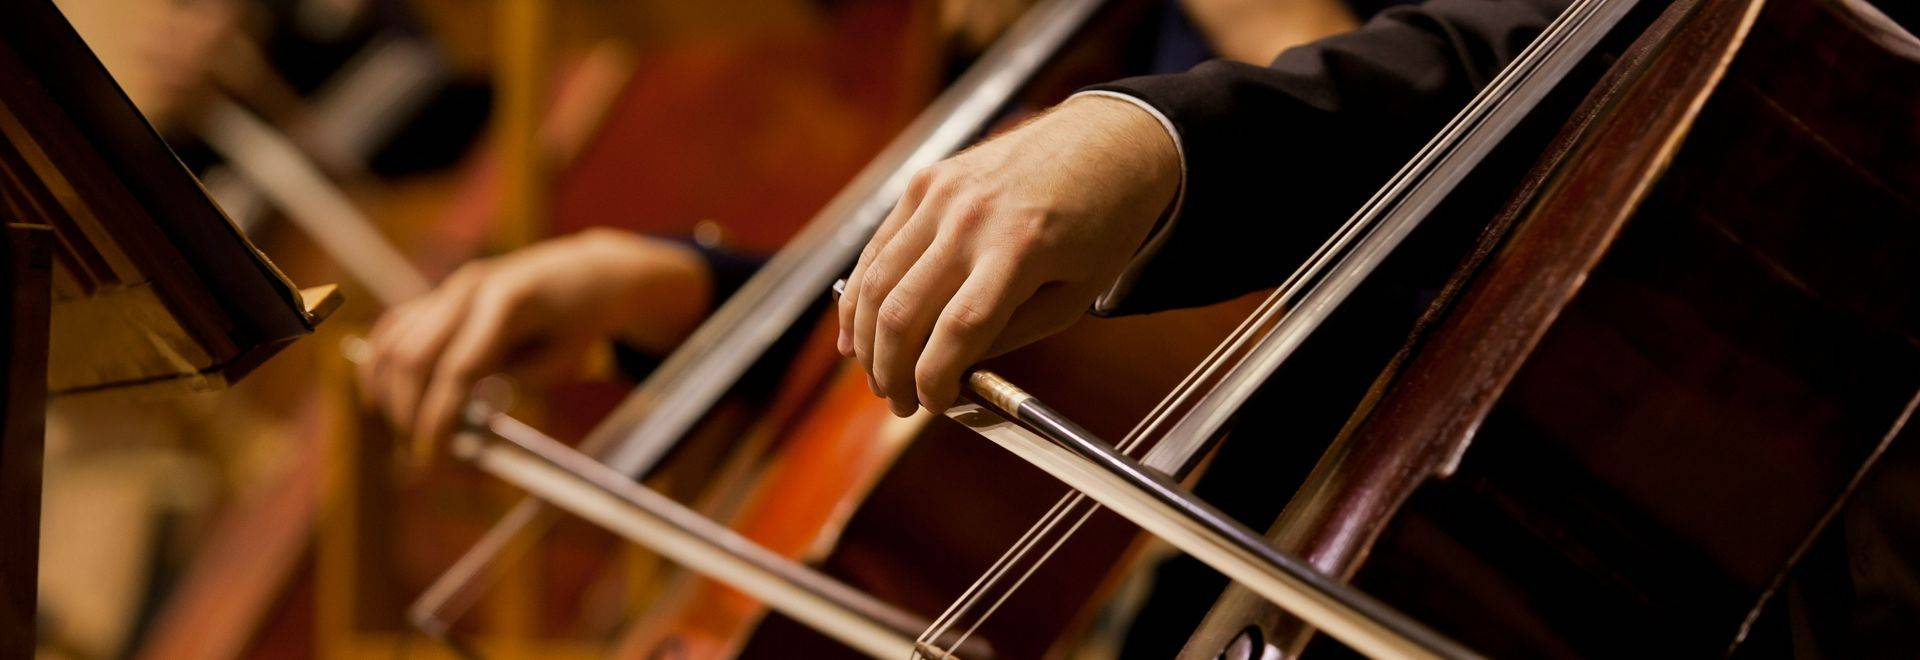 Hands of the man playing the cello in dark colors